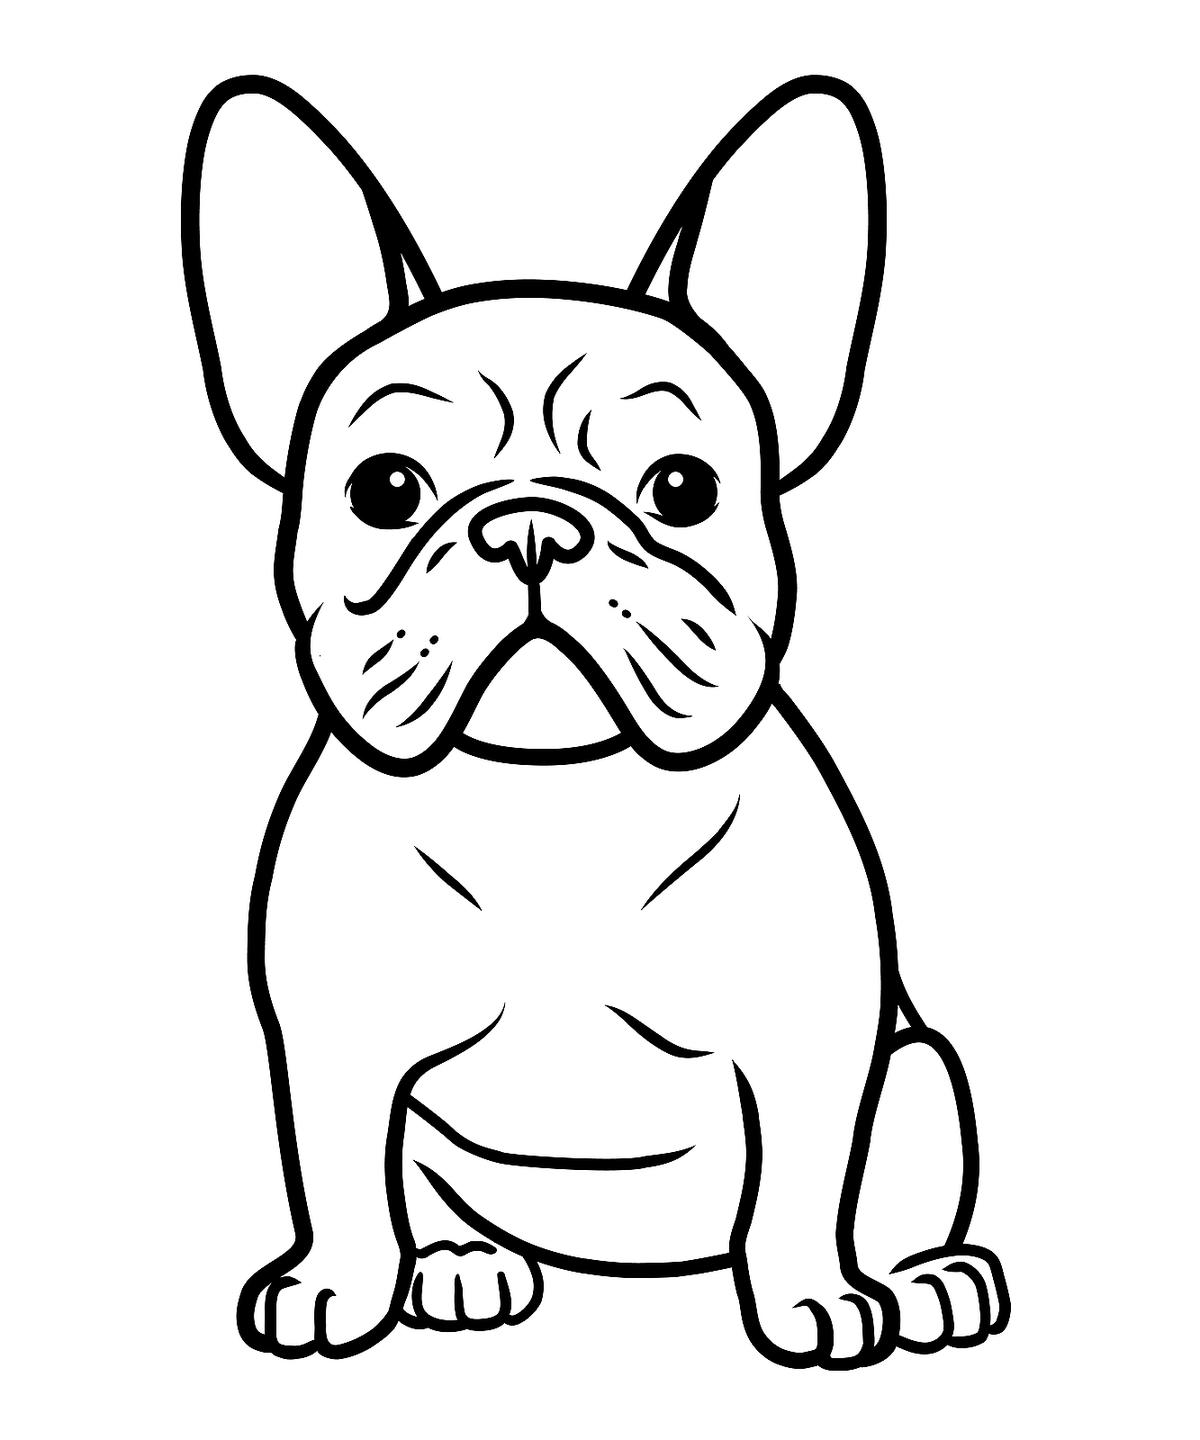 a coloring page of a dog dog breed coloring pages page dog a a coloring of